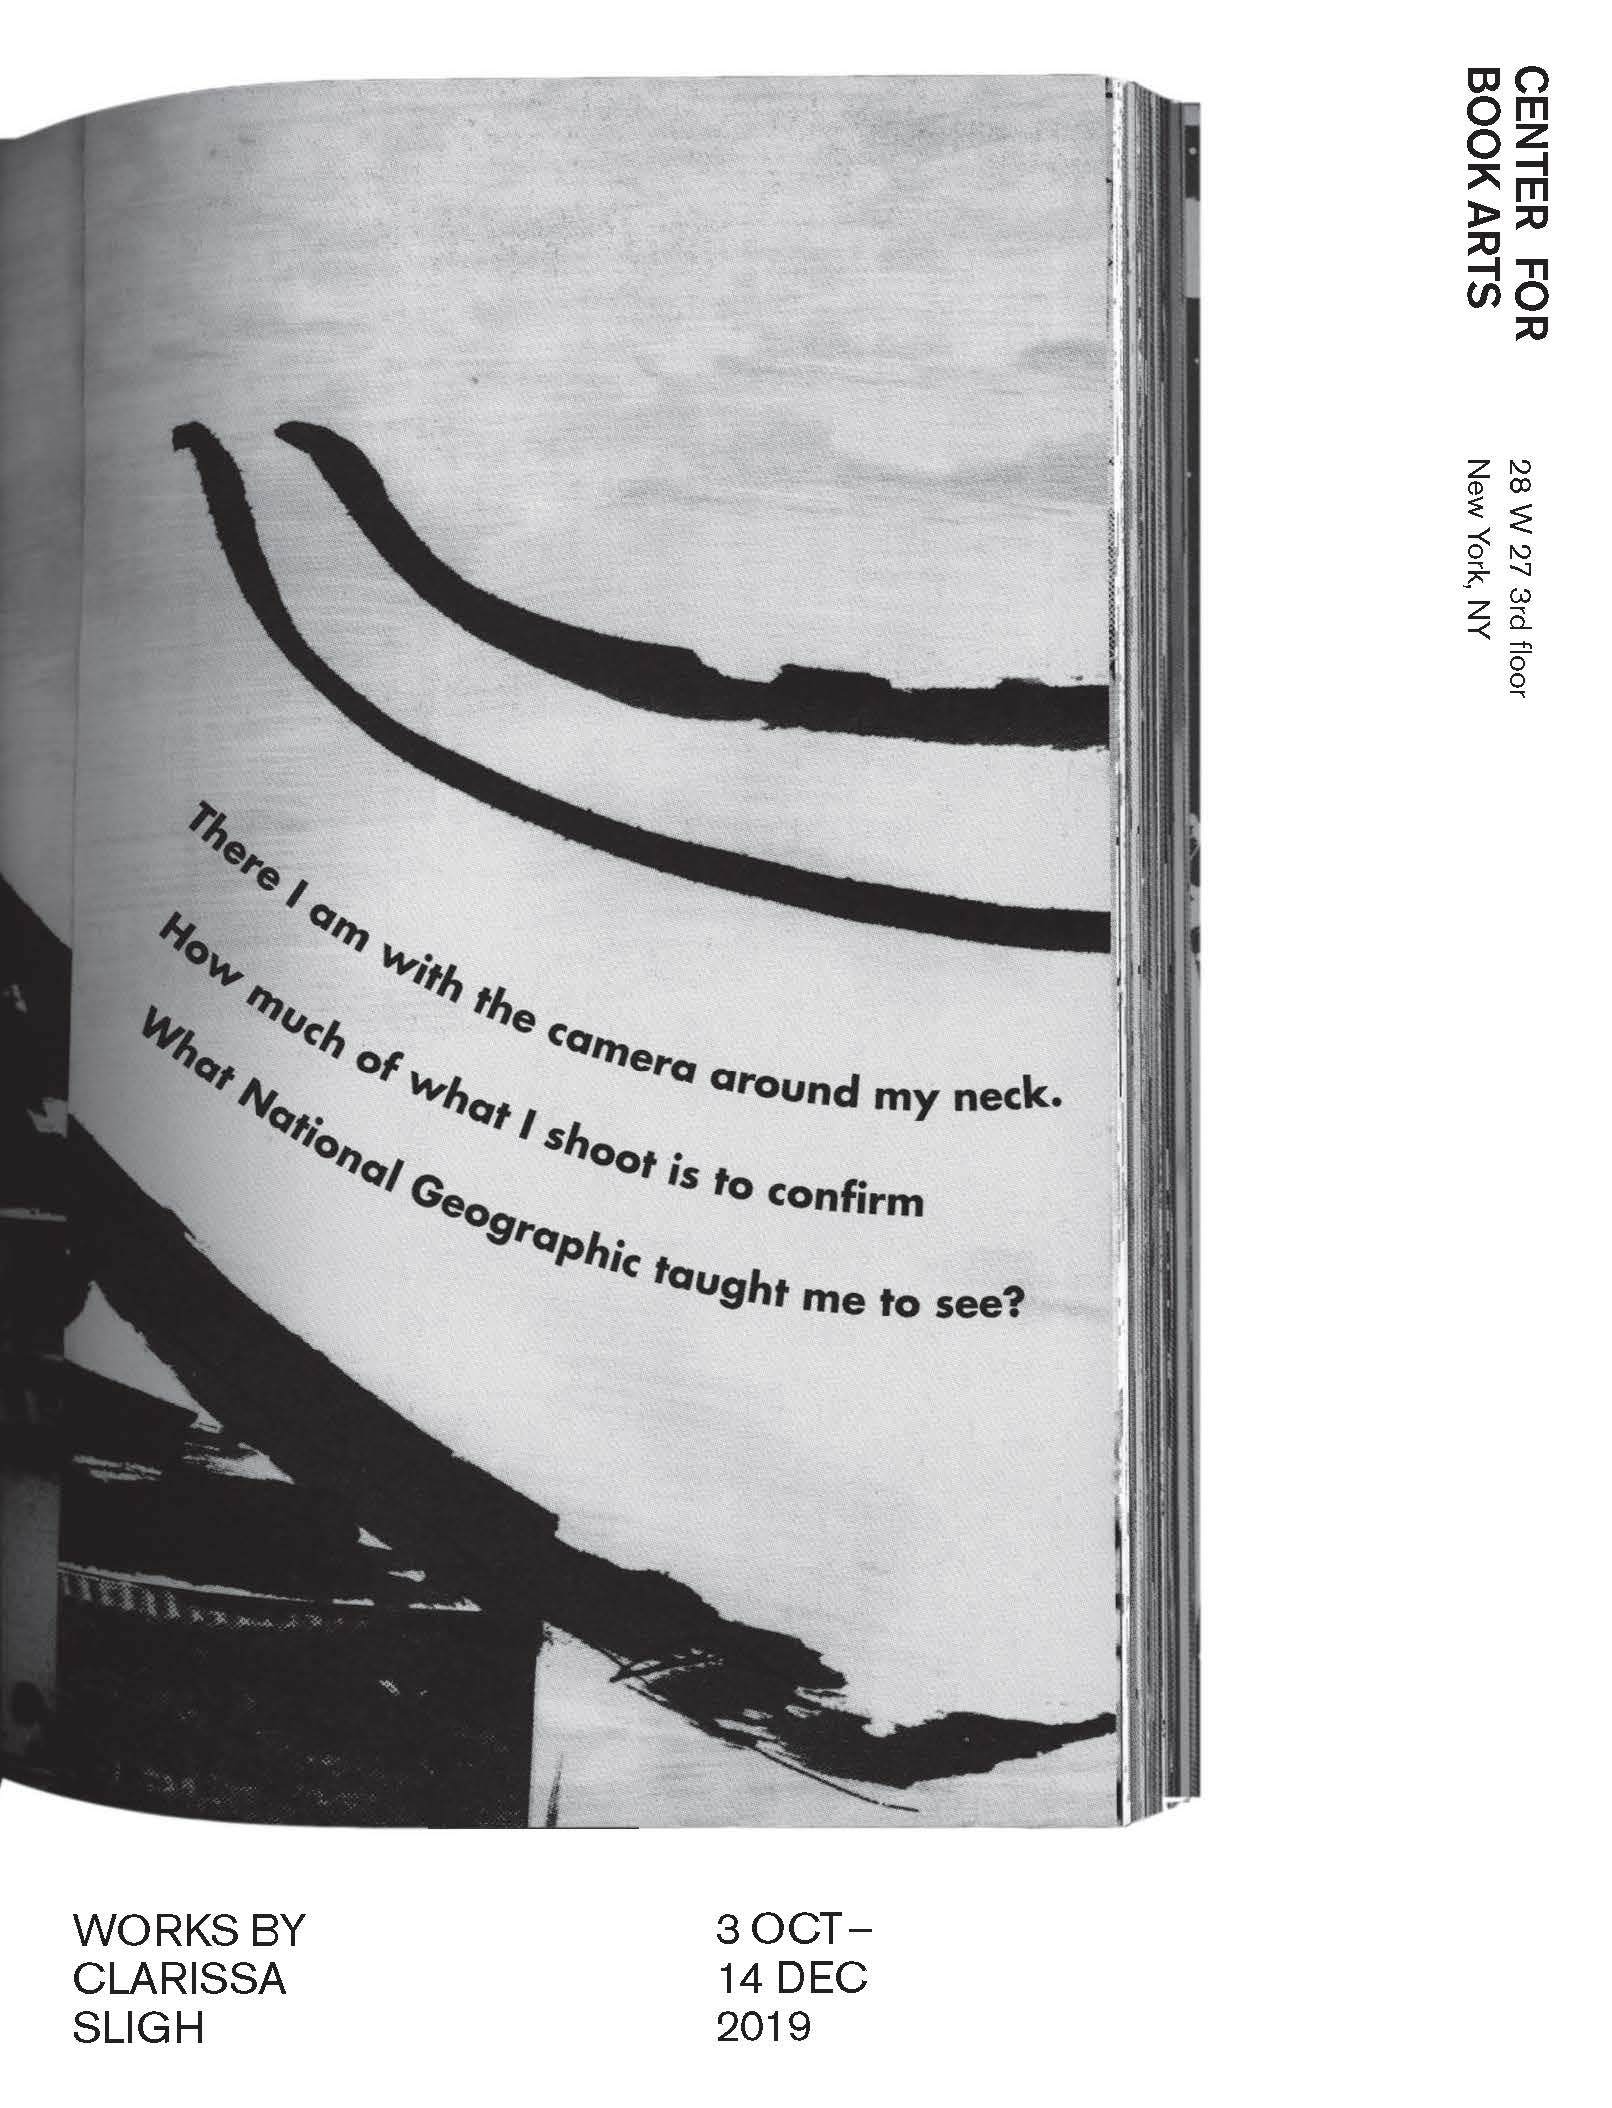 Brochure cover with page from book